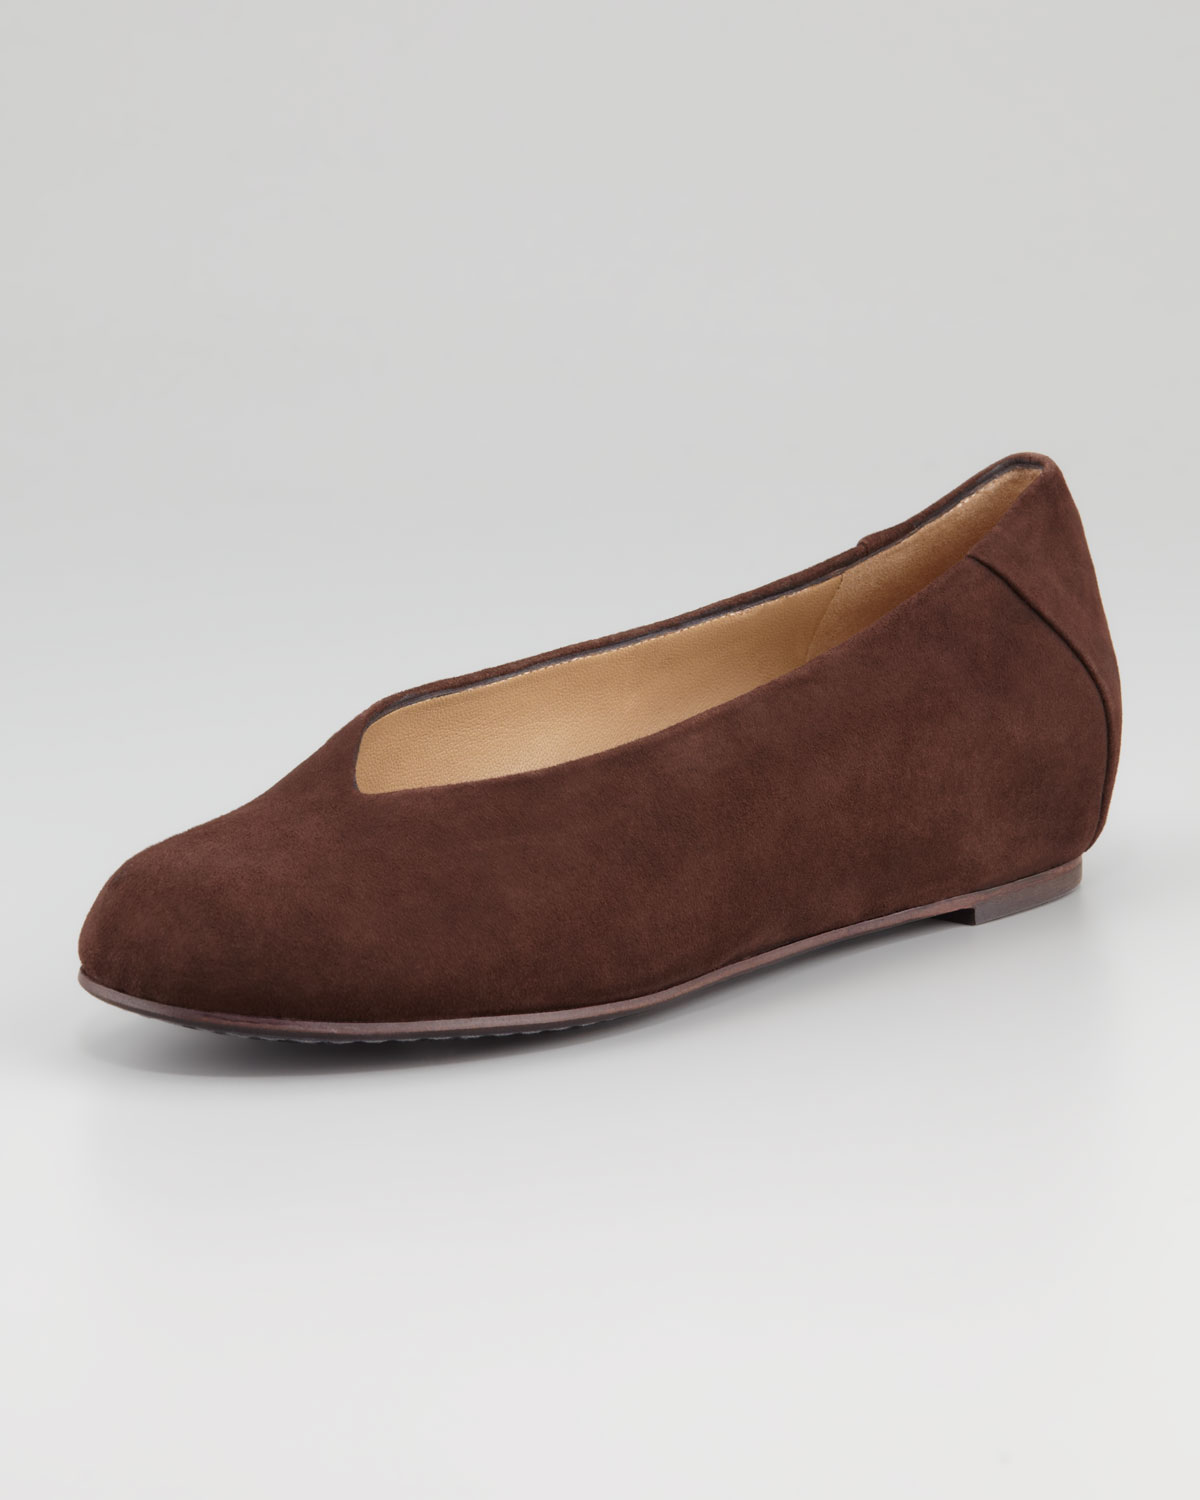 Patch 1 Suede Flats, Brown